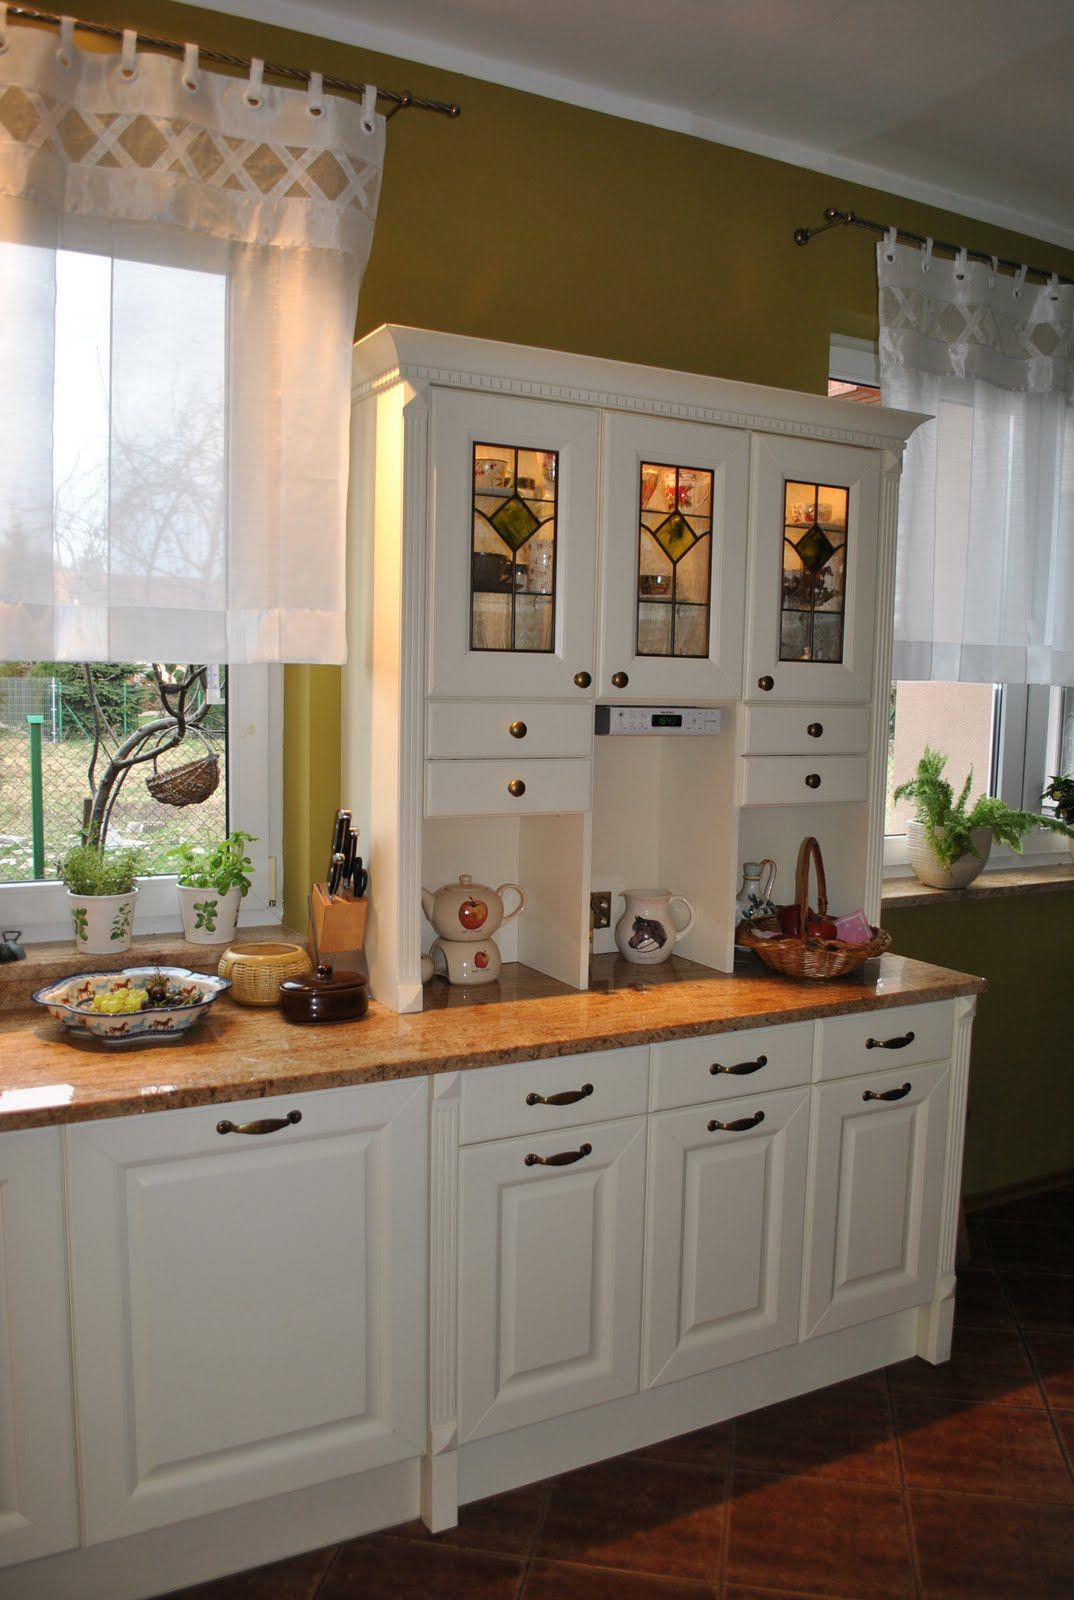 Country Style Kitchen Cabinet Doors English Country Style Dark Green and White Kitche with Beautiful